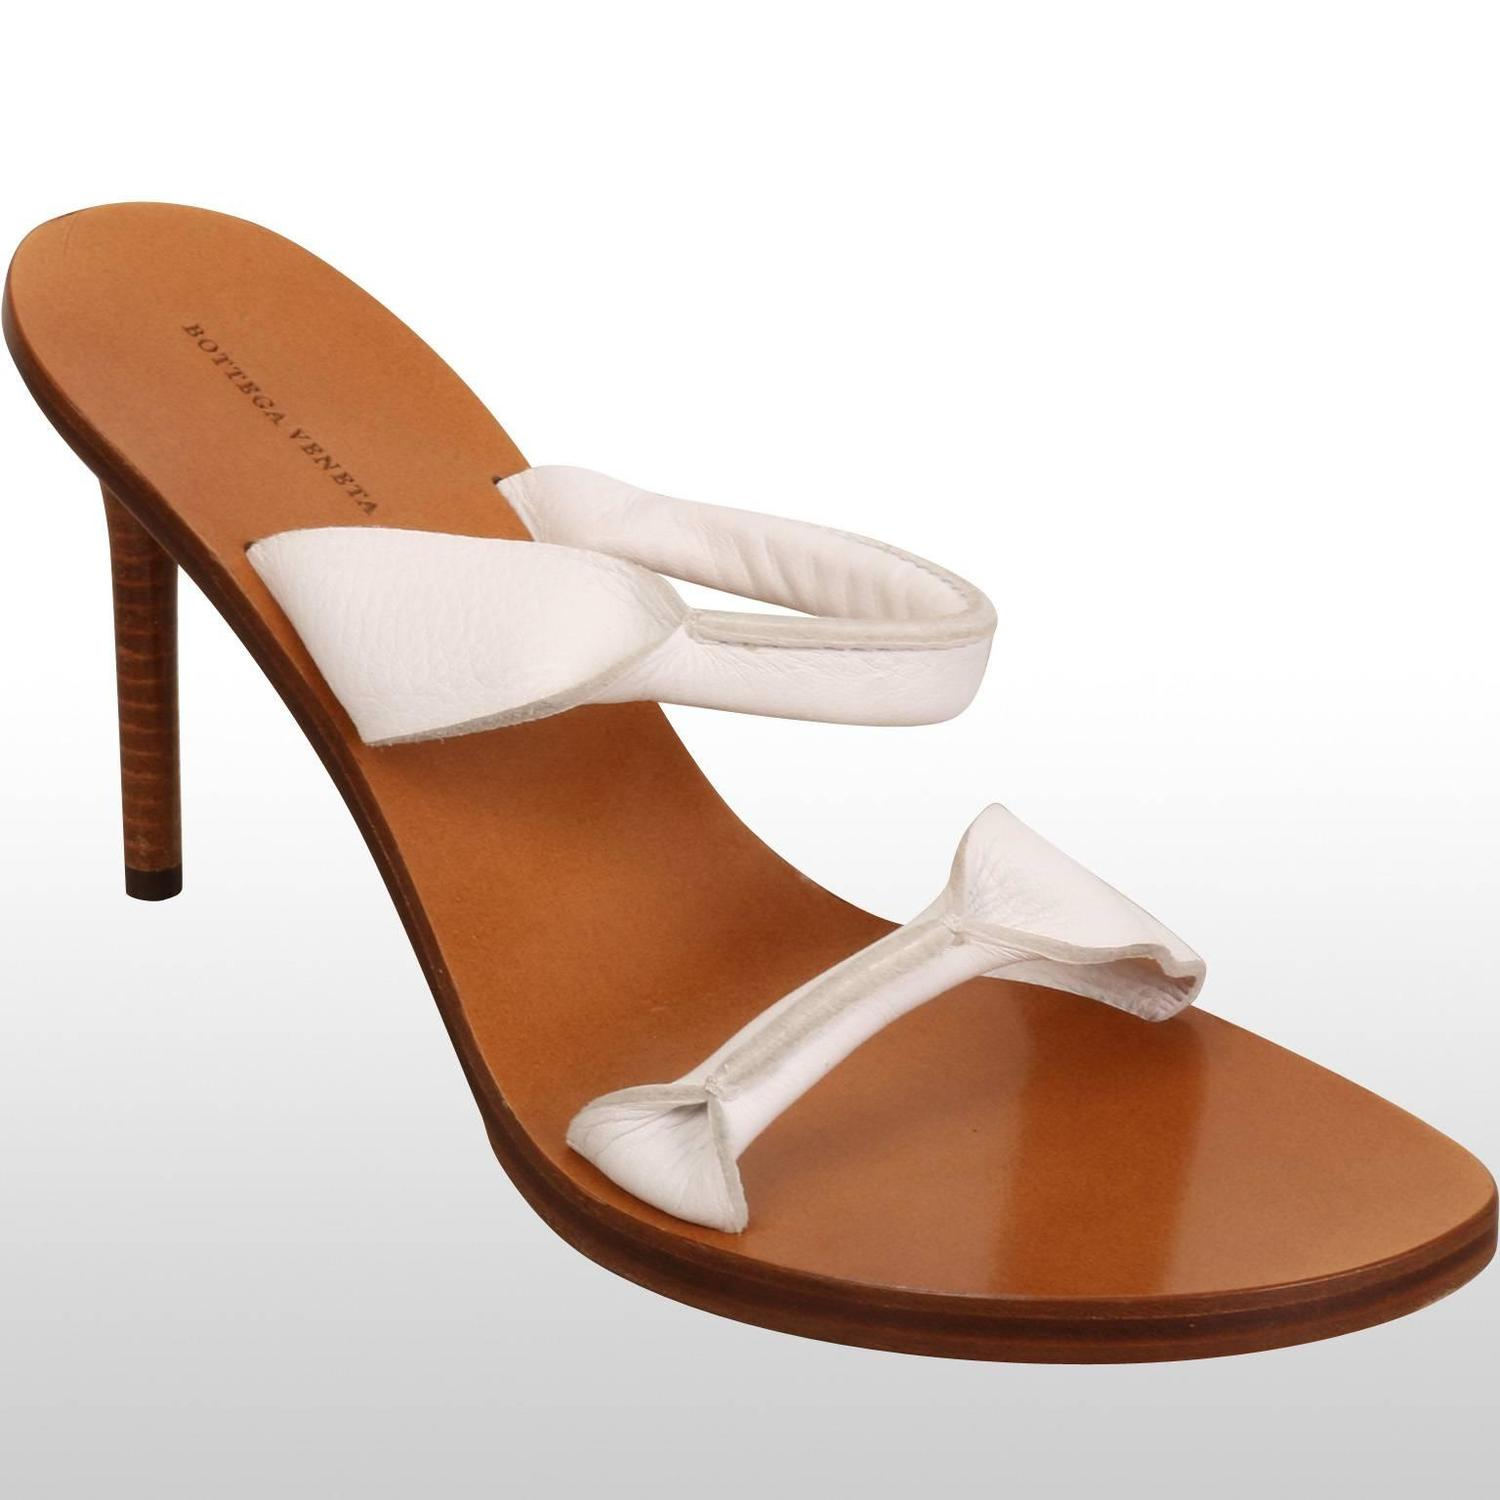 Bottega Veneta White Strap Mule Shoes For Sale At 1stdibs